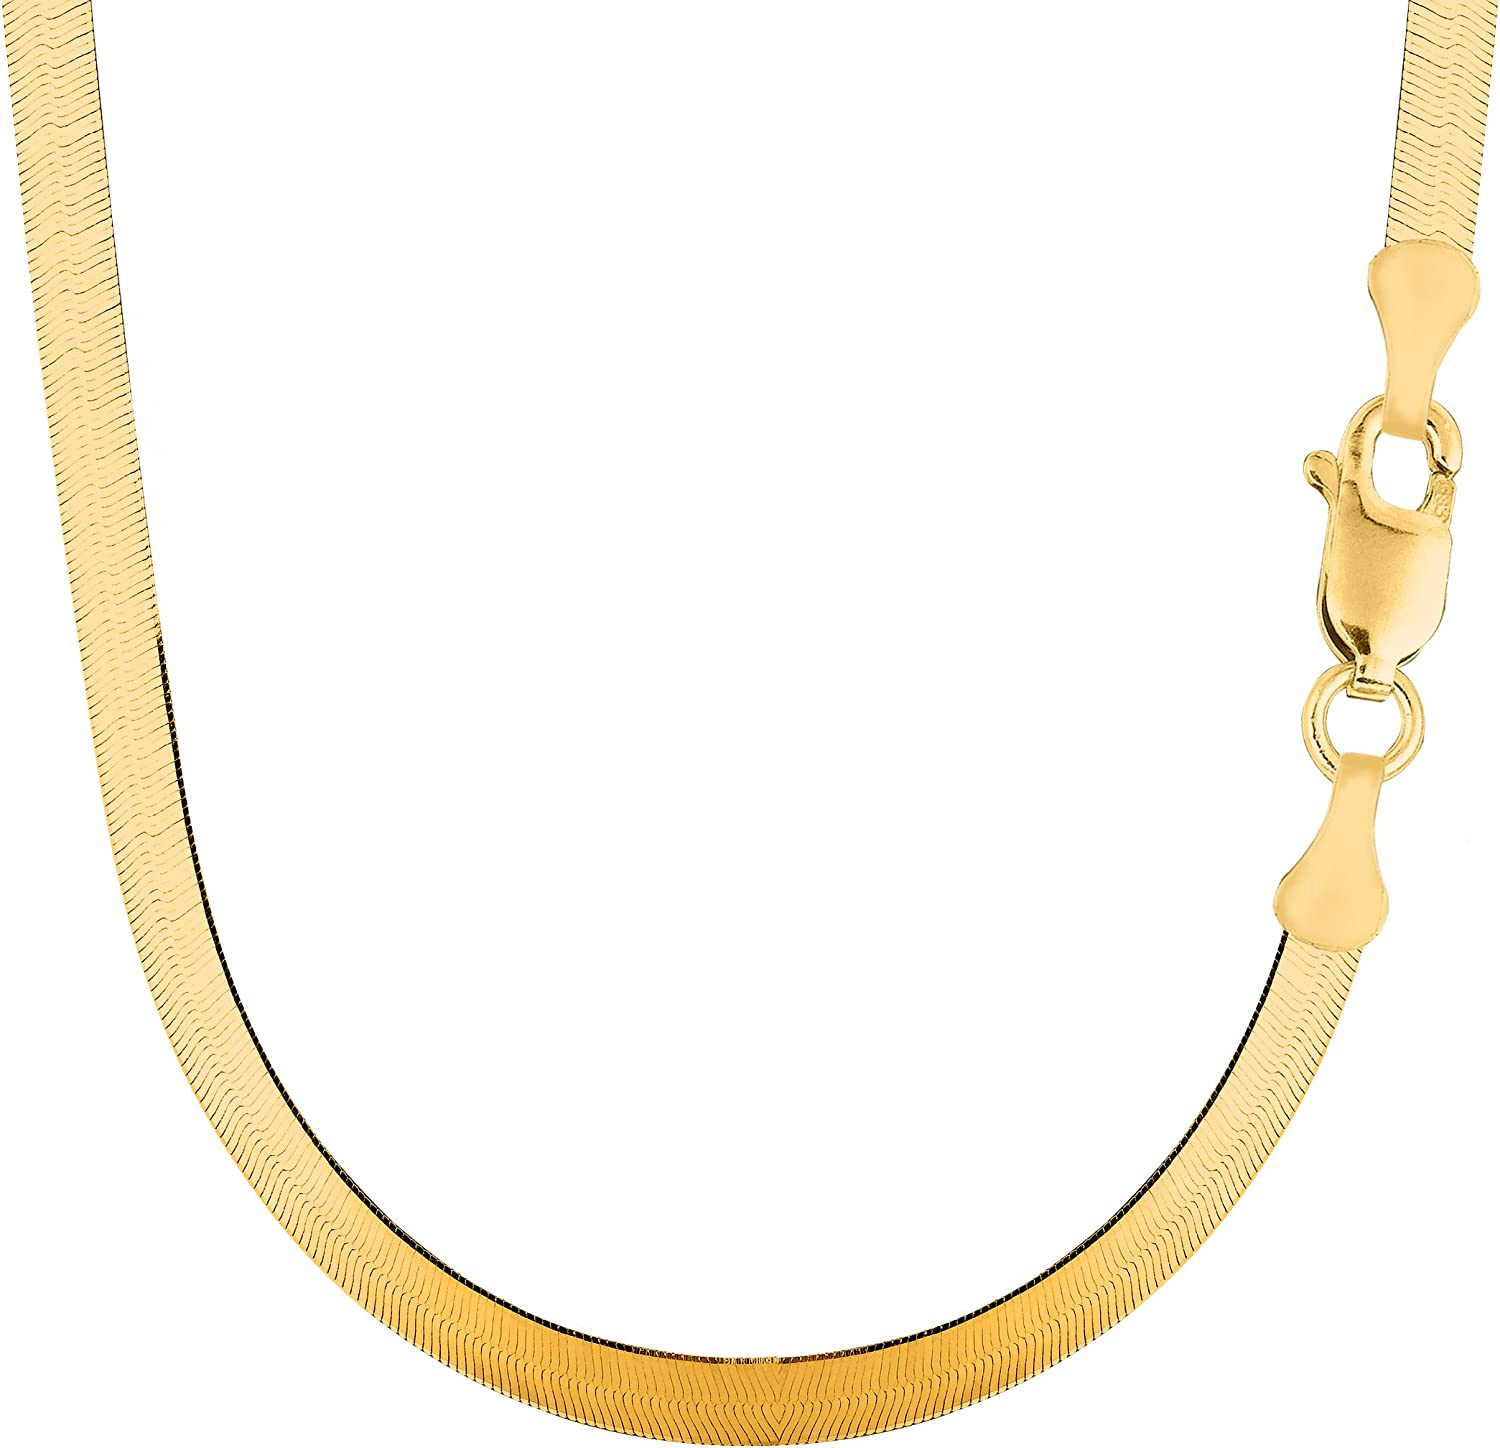 "Amazon.com: 14k Yellow Solid Gold Imperial Herringbone Chain Necklace,  6.0mm, 16"": Jewelry"